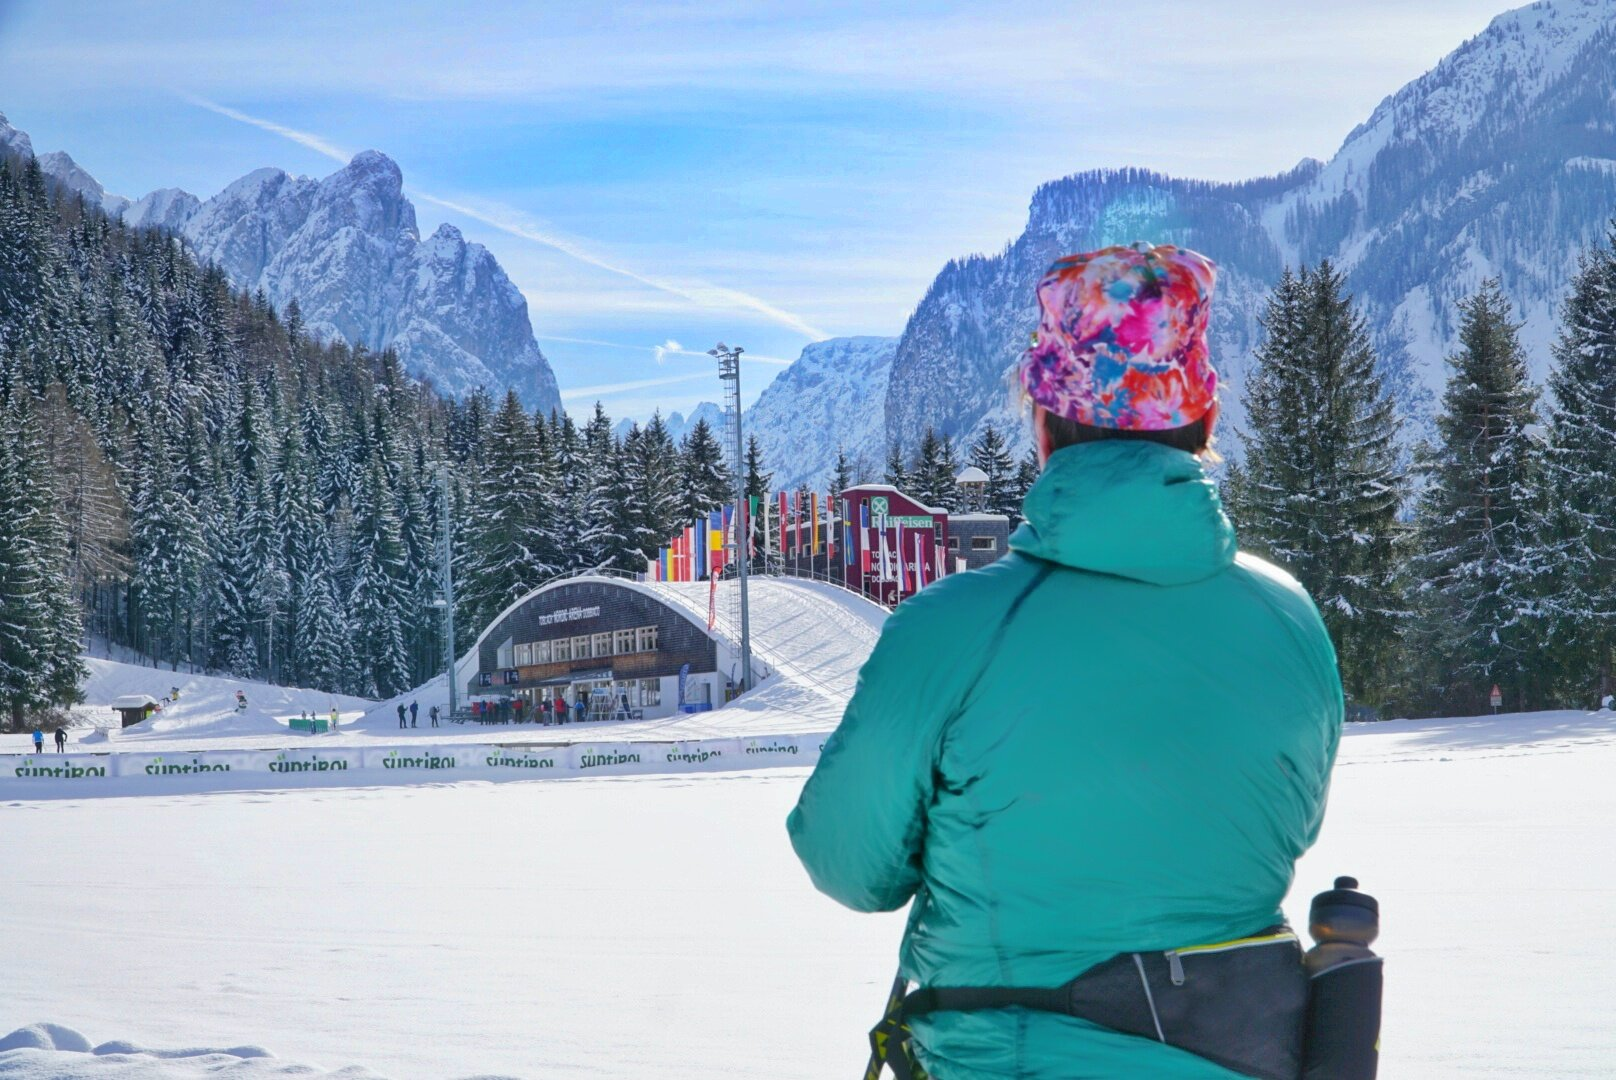 The trips are not only about racing. Trips, such as this one to the Toblach in the Italian Dolomites, feature recreational skiing through some of the most scenic villages in the Alps.